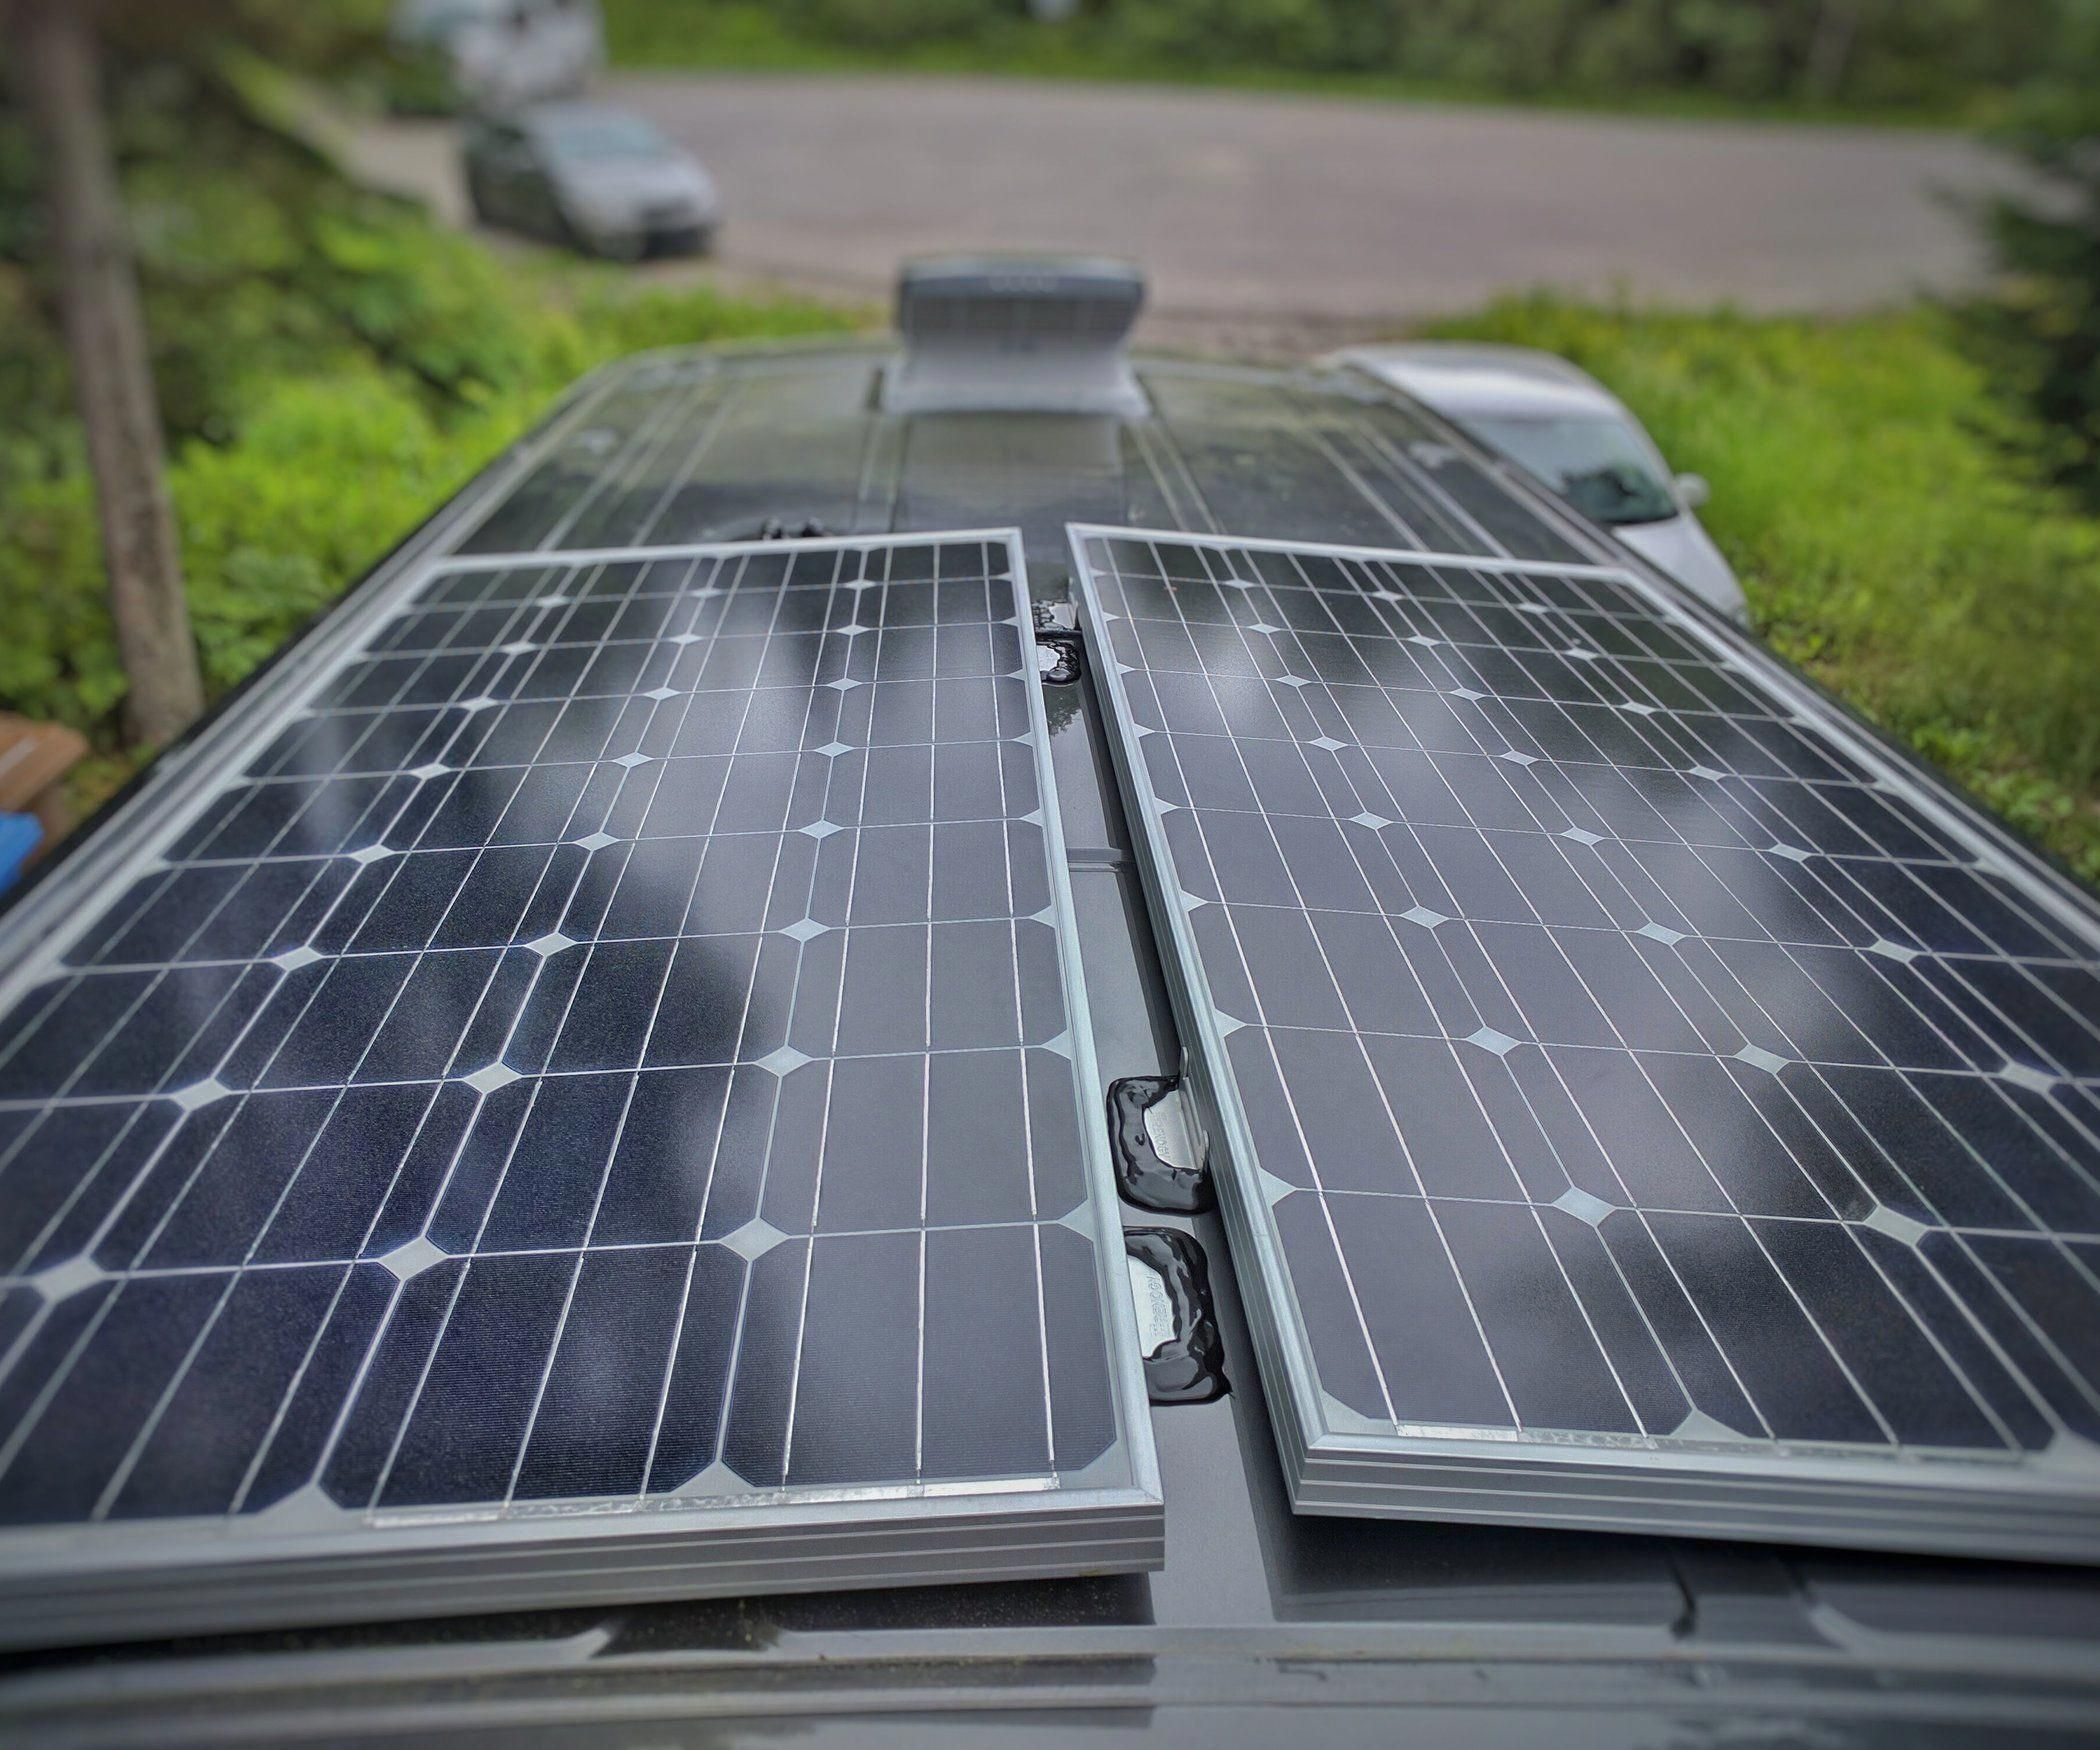 How To Install Solar Panel S On A Camper Van Conversion In 2020 Solar Panels Best Solar Panels Solar Energy Panels